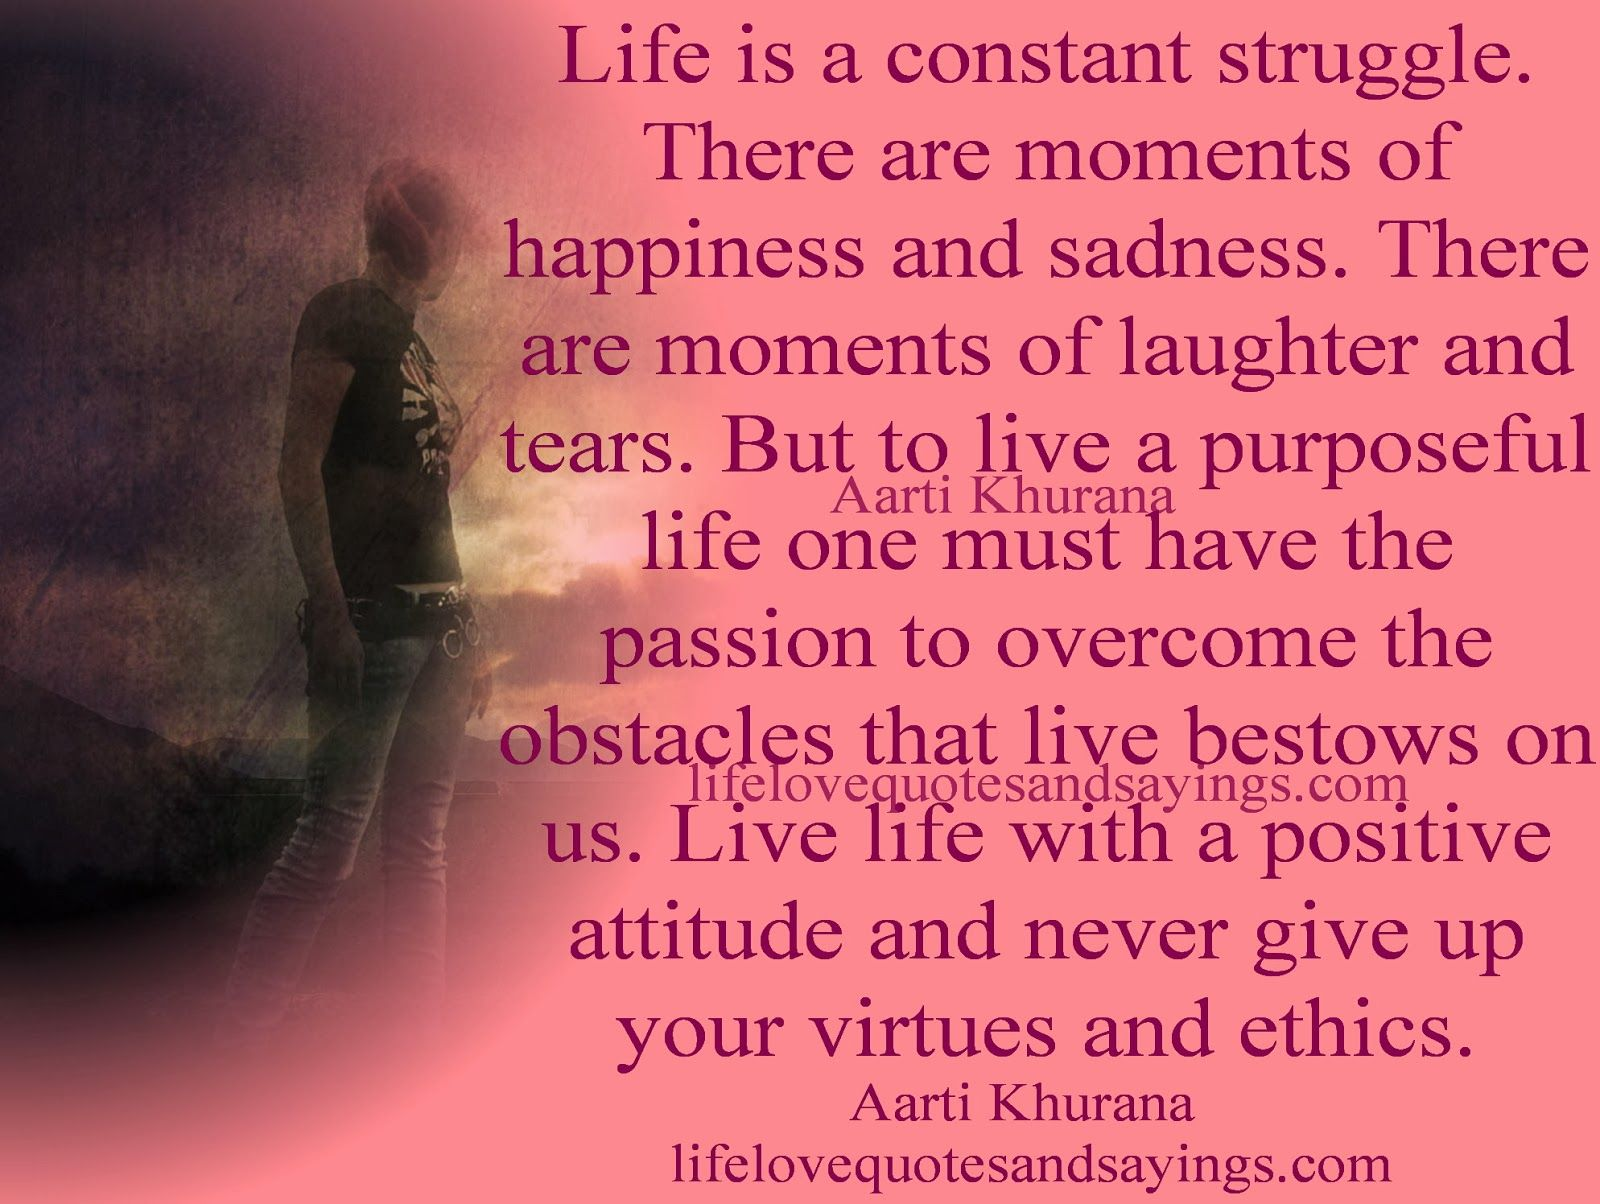 Sayings About Life Struggles Inspirational Quotes About Life Struggles Life Struggle Quotes Struggle Quotes Inspiring Quotes About Life